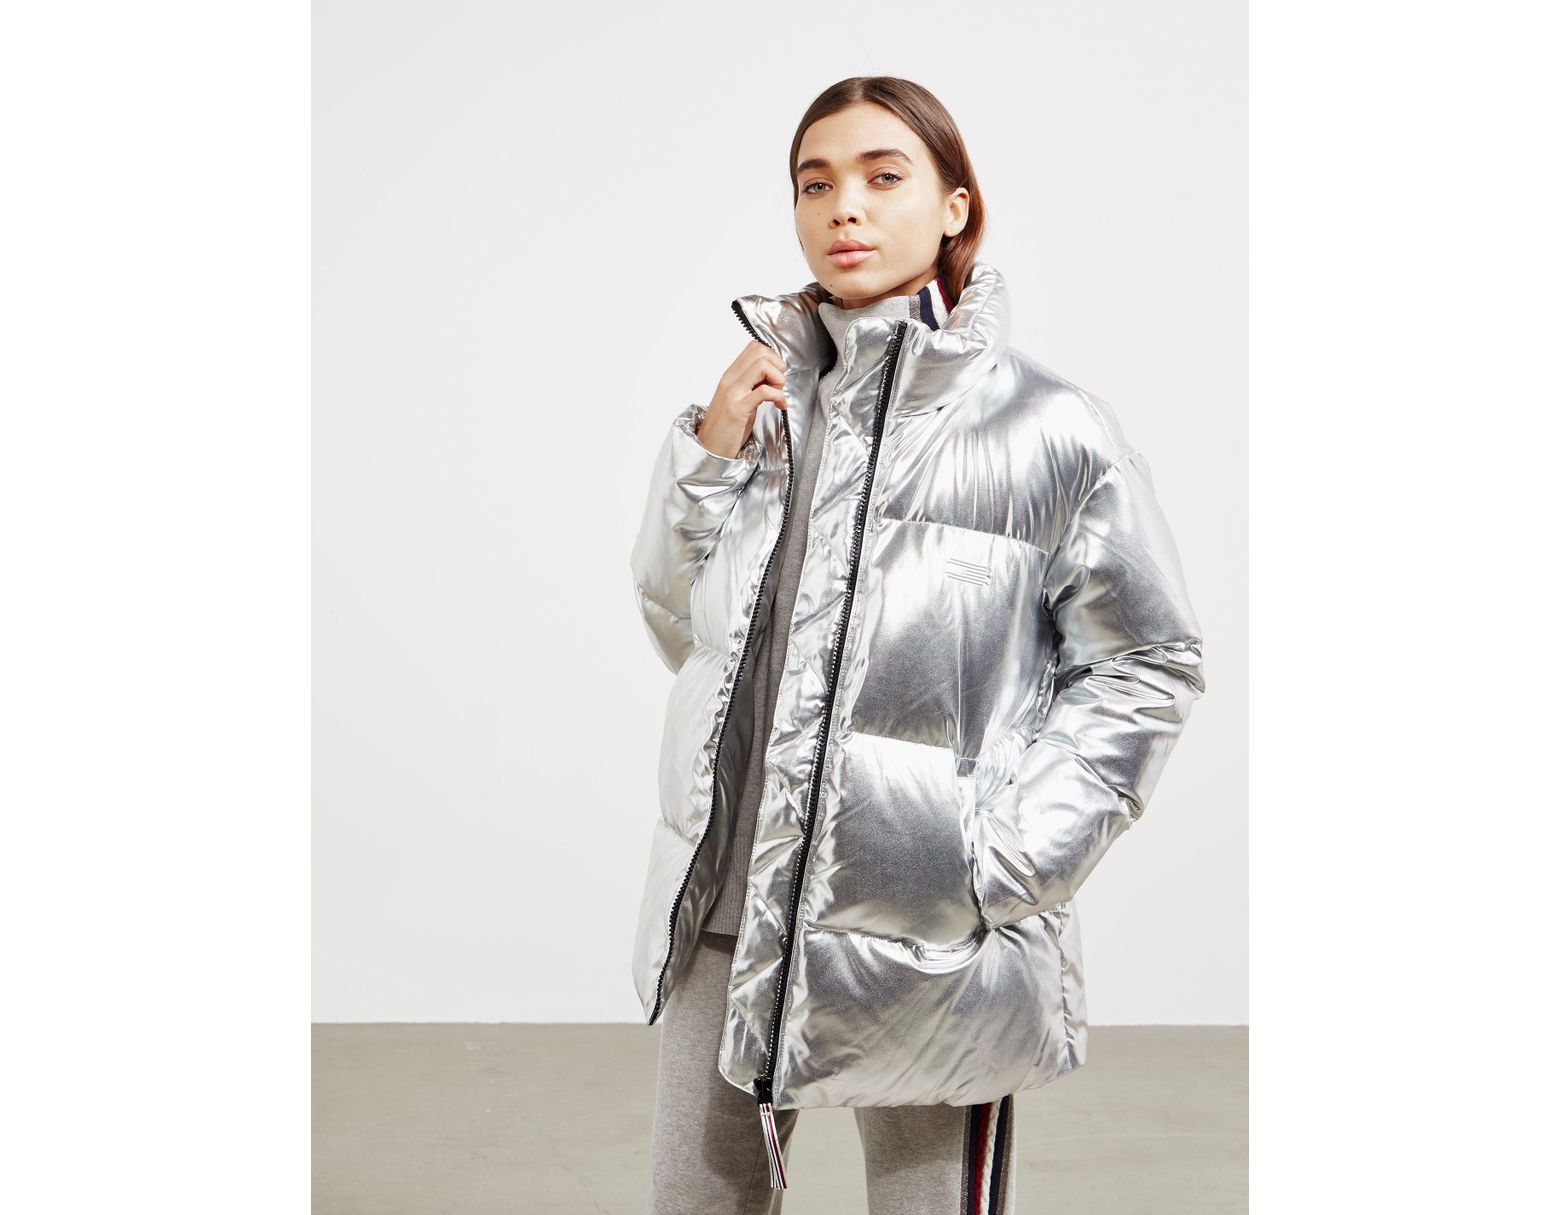 ad7eb809ca5 Tommy Hilfiger Icon High Gloss Jacket - Online Exclusive Silver in Metallic  - Save 16% - Lyst